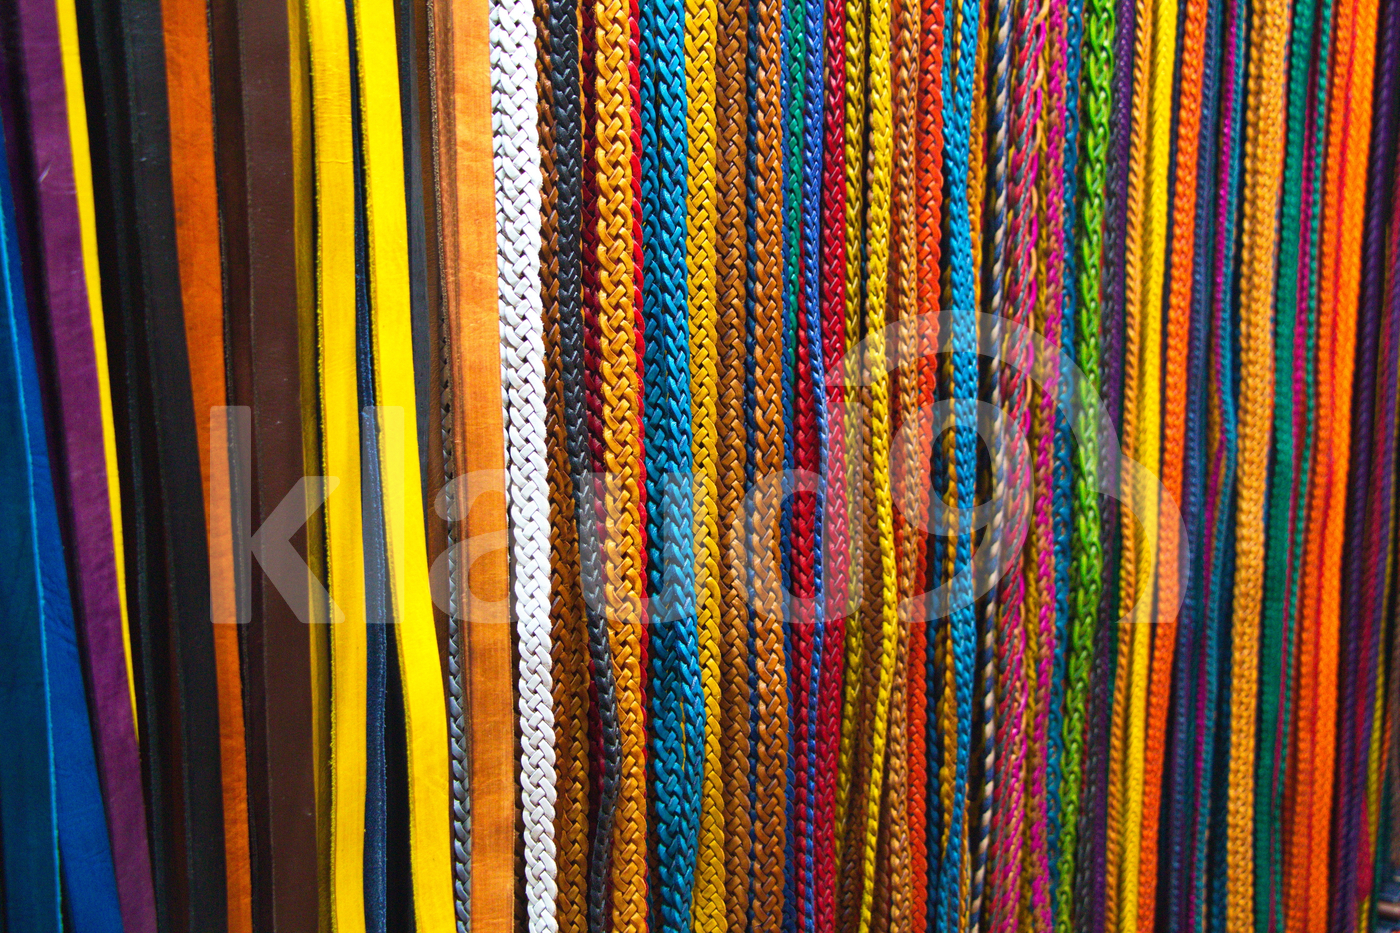 Colored belts in Fes market in Morocco